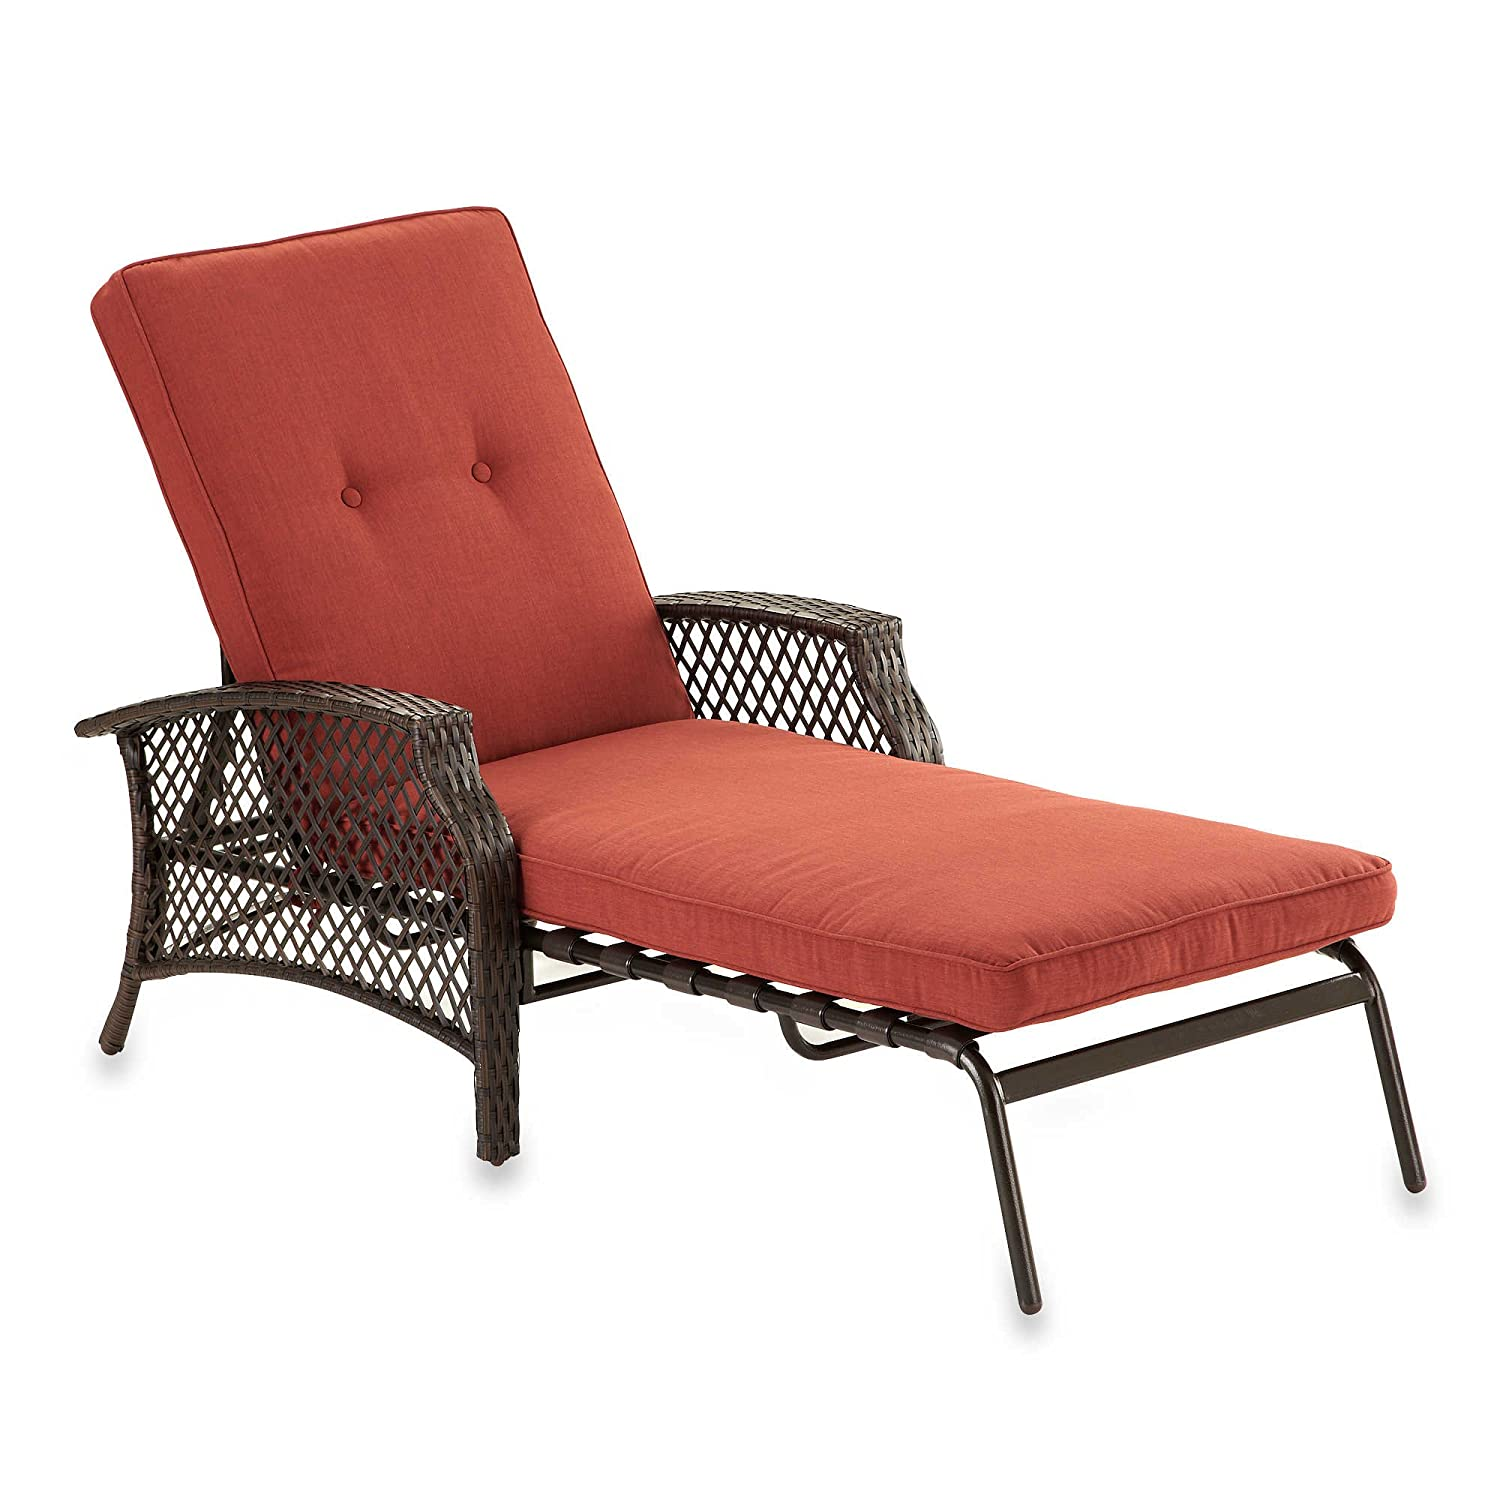 Best of outdoor chaise lounge chair for Best chaise lounges